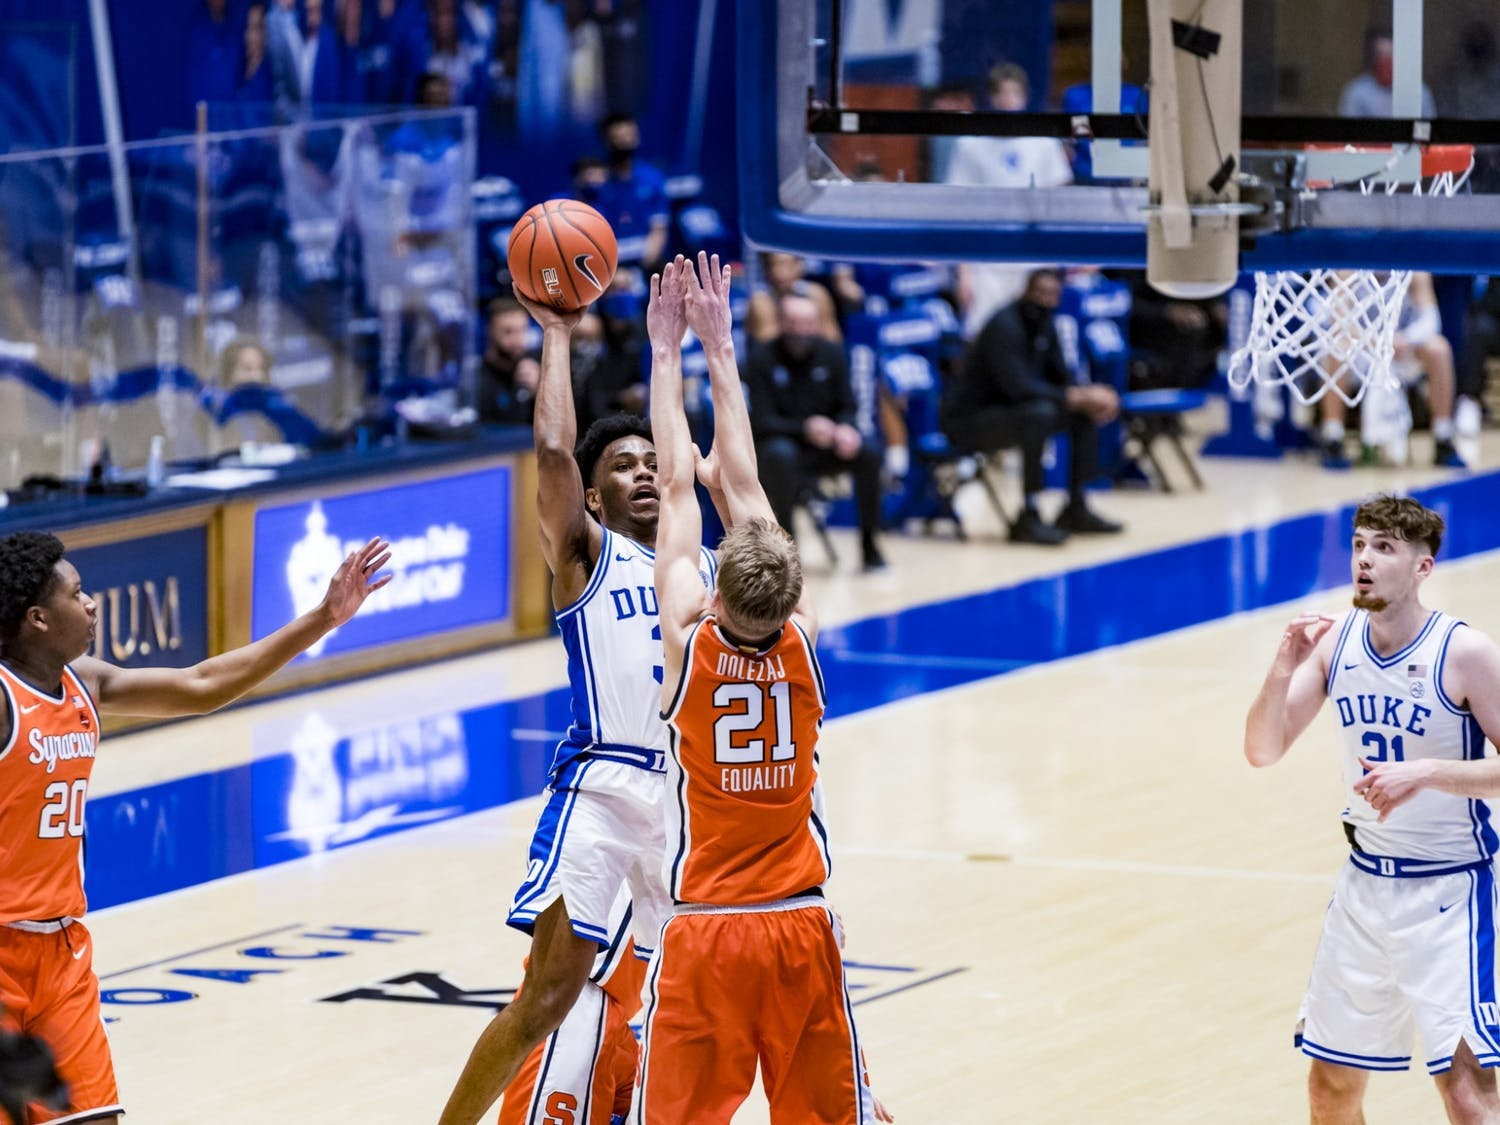 Jeremy Roach had arguably his most complete game as a Blue Devil Monday night, notching 14 points and seven assists.